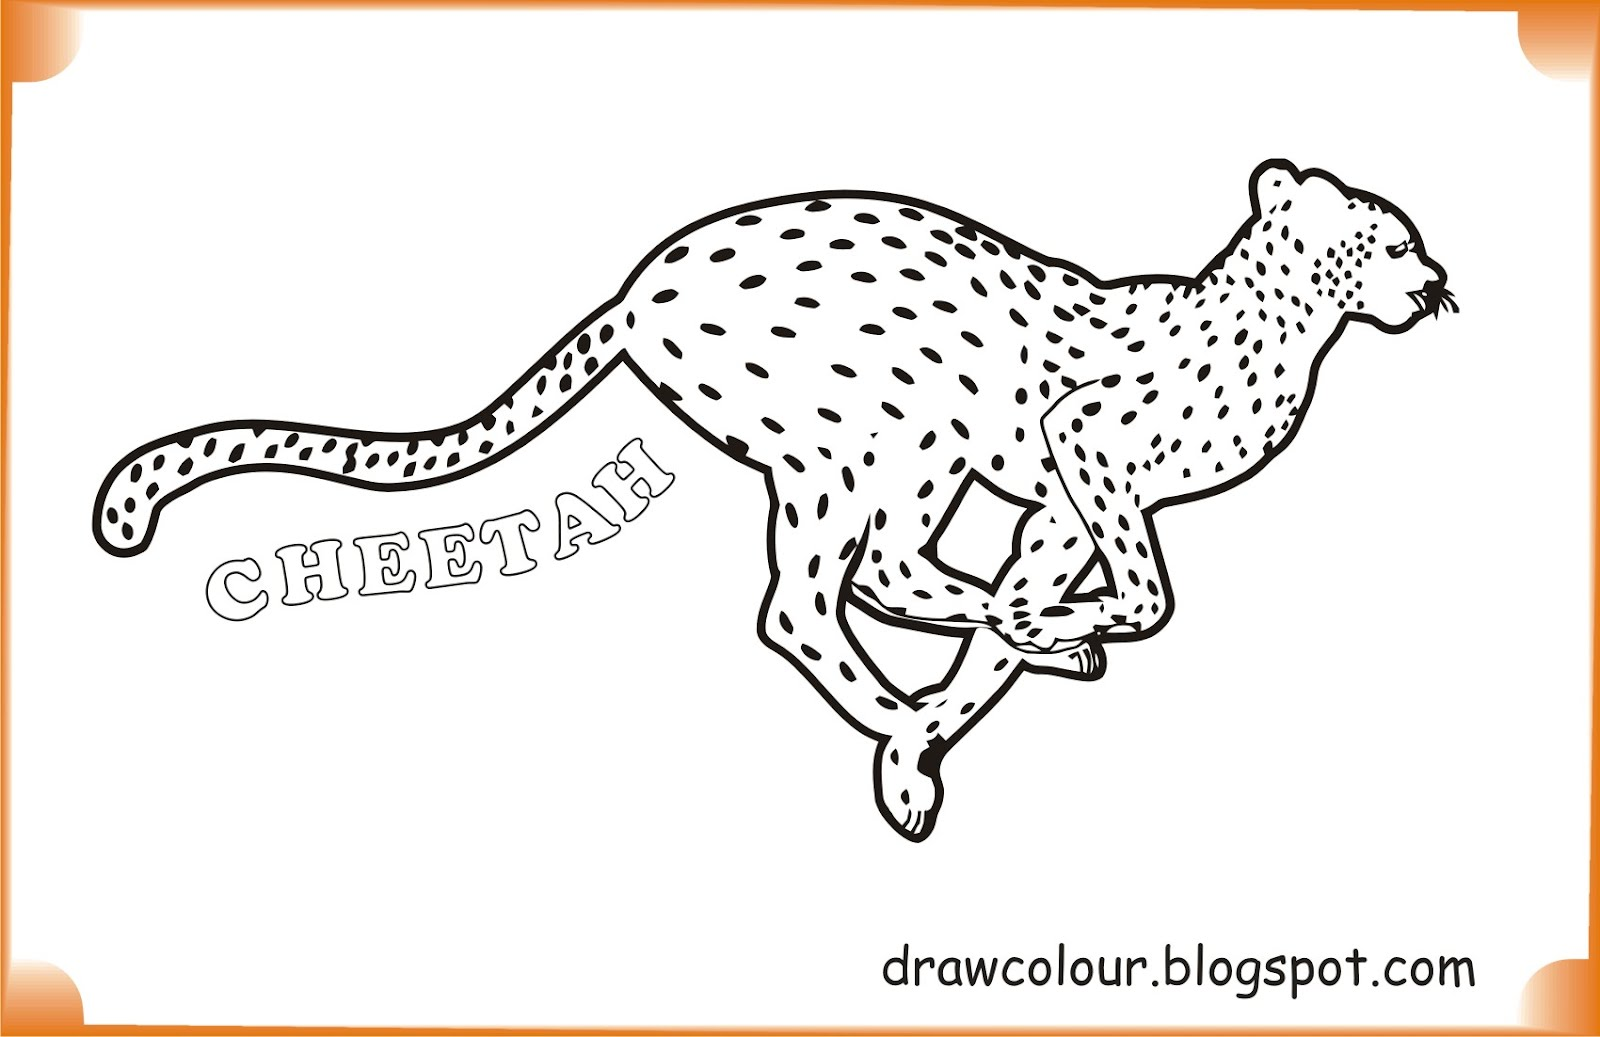 Cheetah Coloring Pages Art Paper